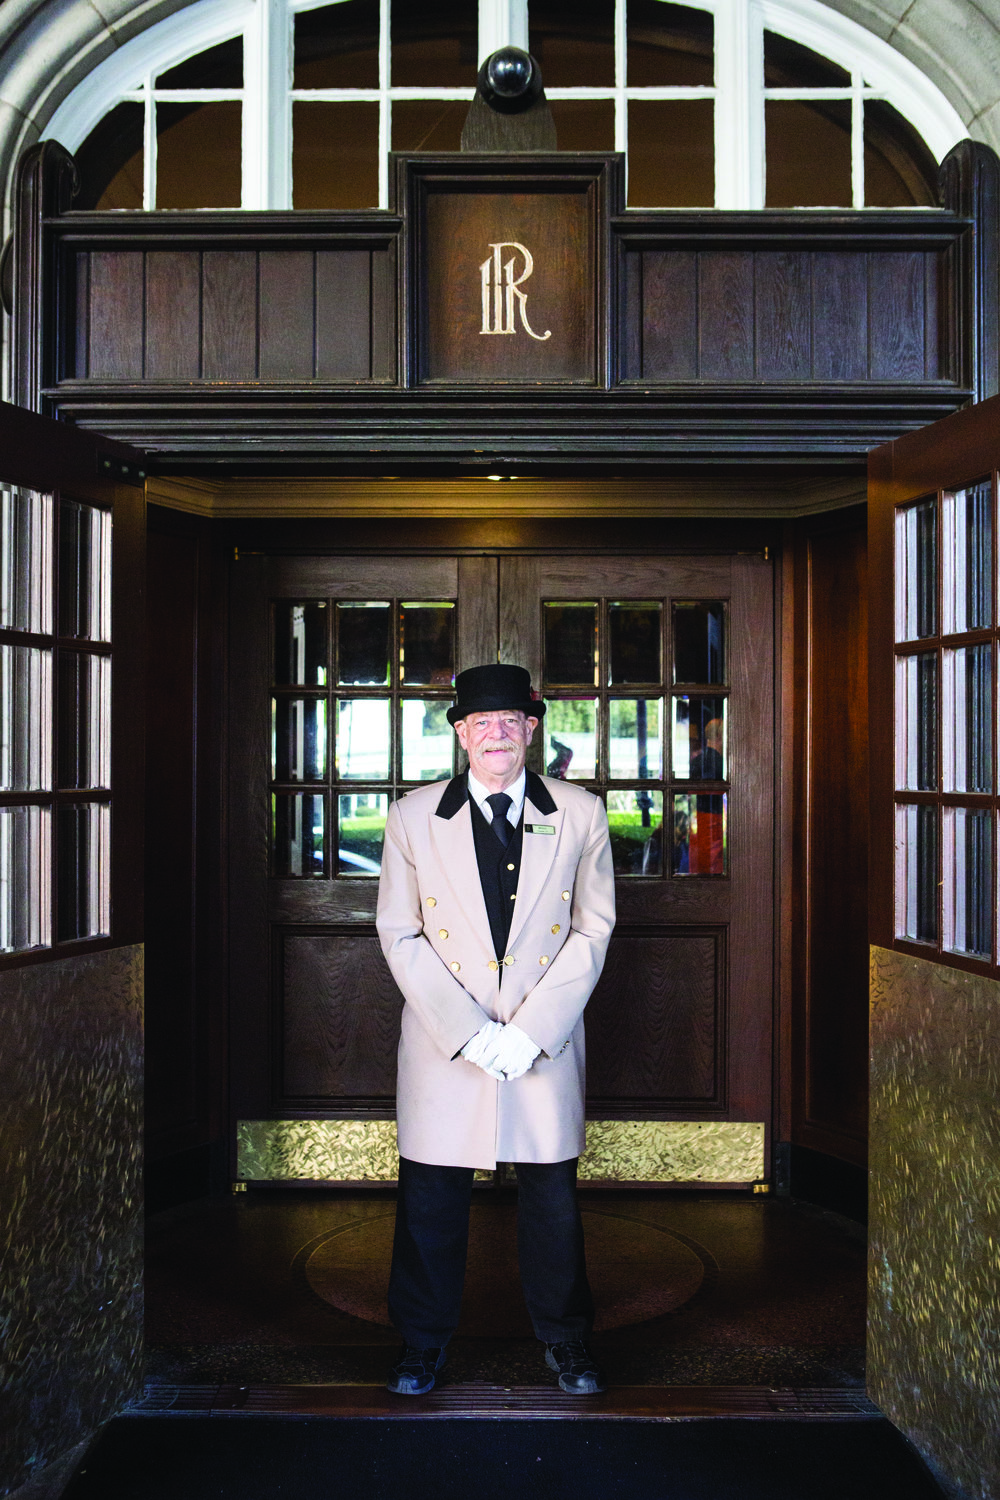 Doorman at Hotel Roanoke